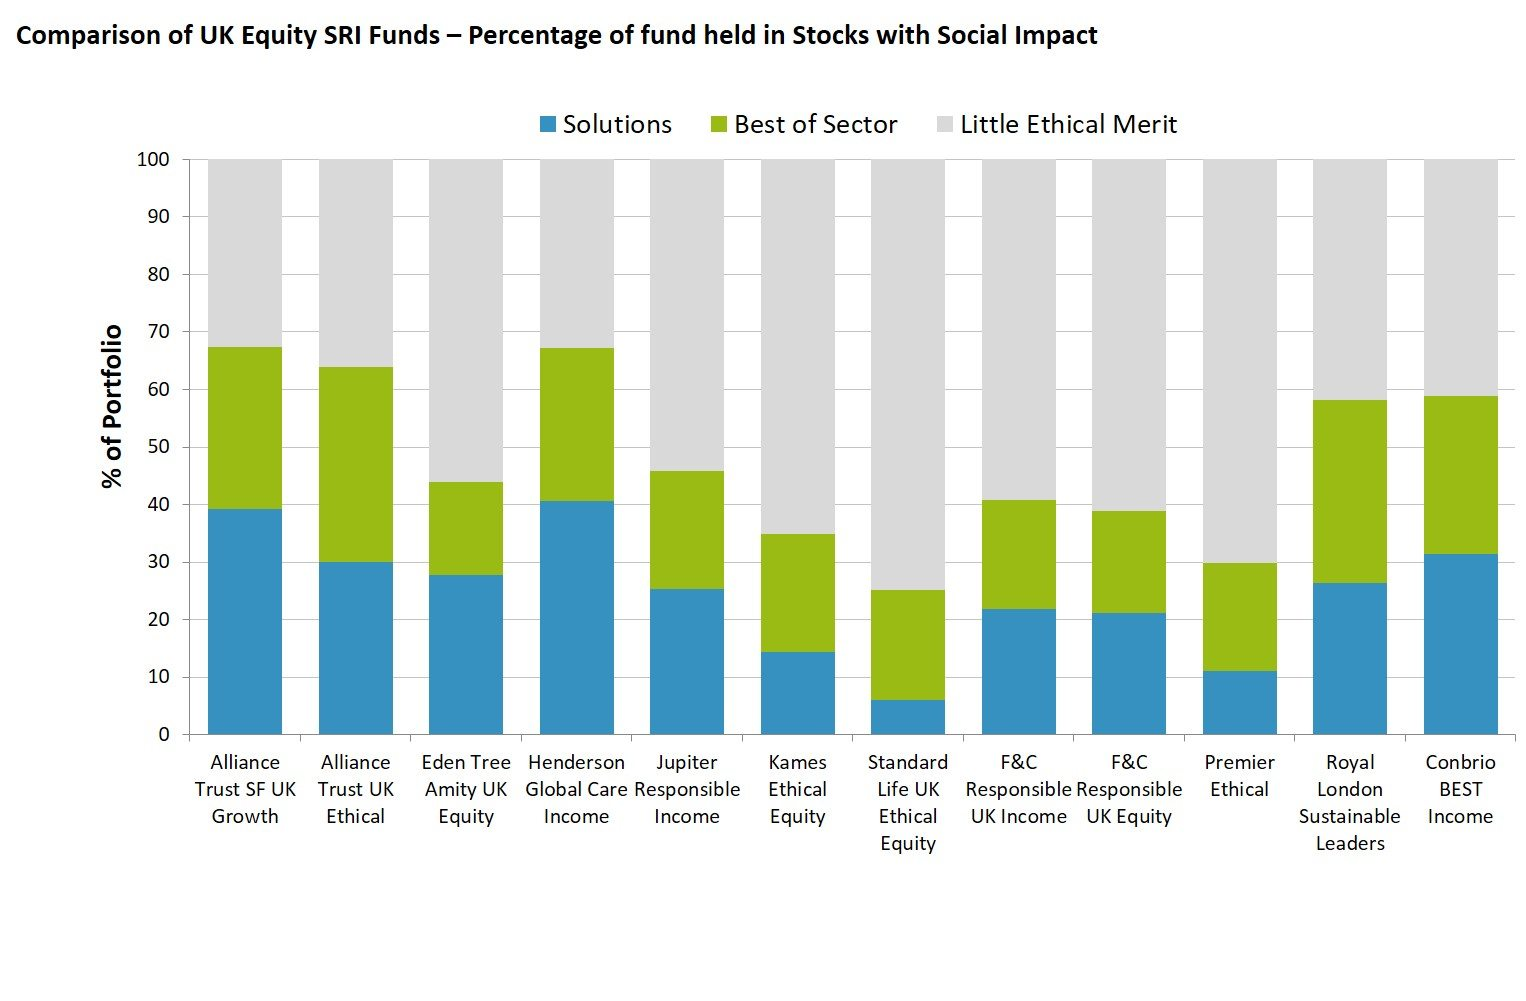 3D Comparison of UK Equity SRI Funds – Percentage of fund held in Stocks with Social Impact